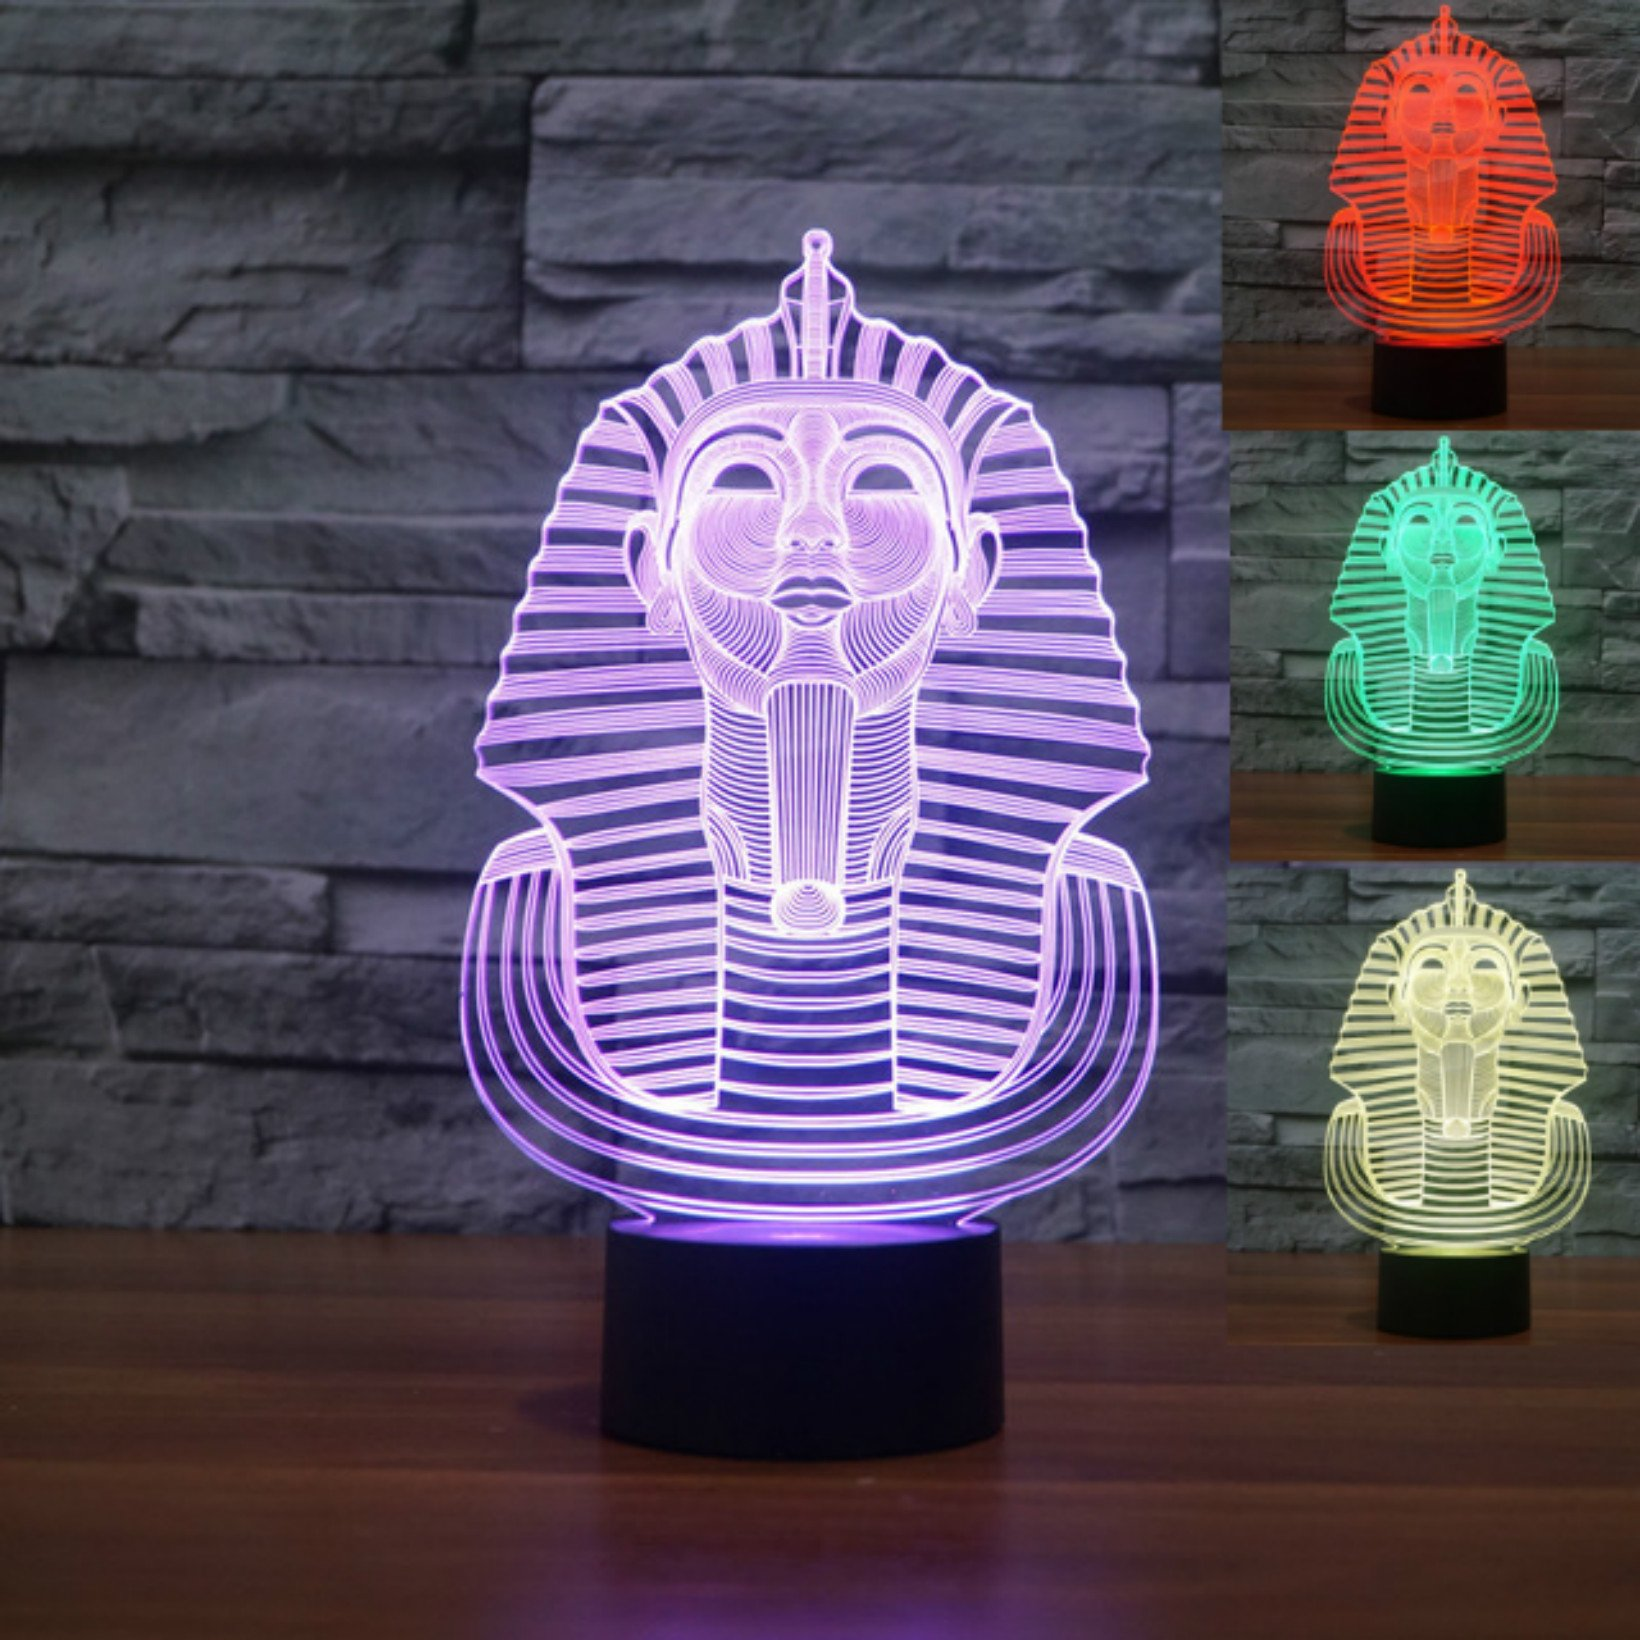 Cute Animal 3D Egypt Pharao Night Light USB Touch Switch Decor Table Desk Optical Illusion Lamps 7 Color Changing Lights LED Table Lamp Xmas Home Love Brithday Children Kids Decor Toy Gift